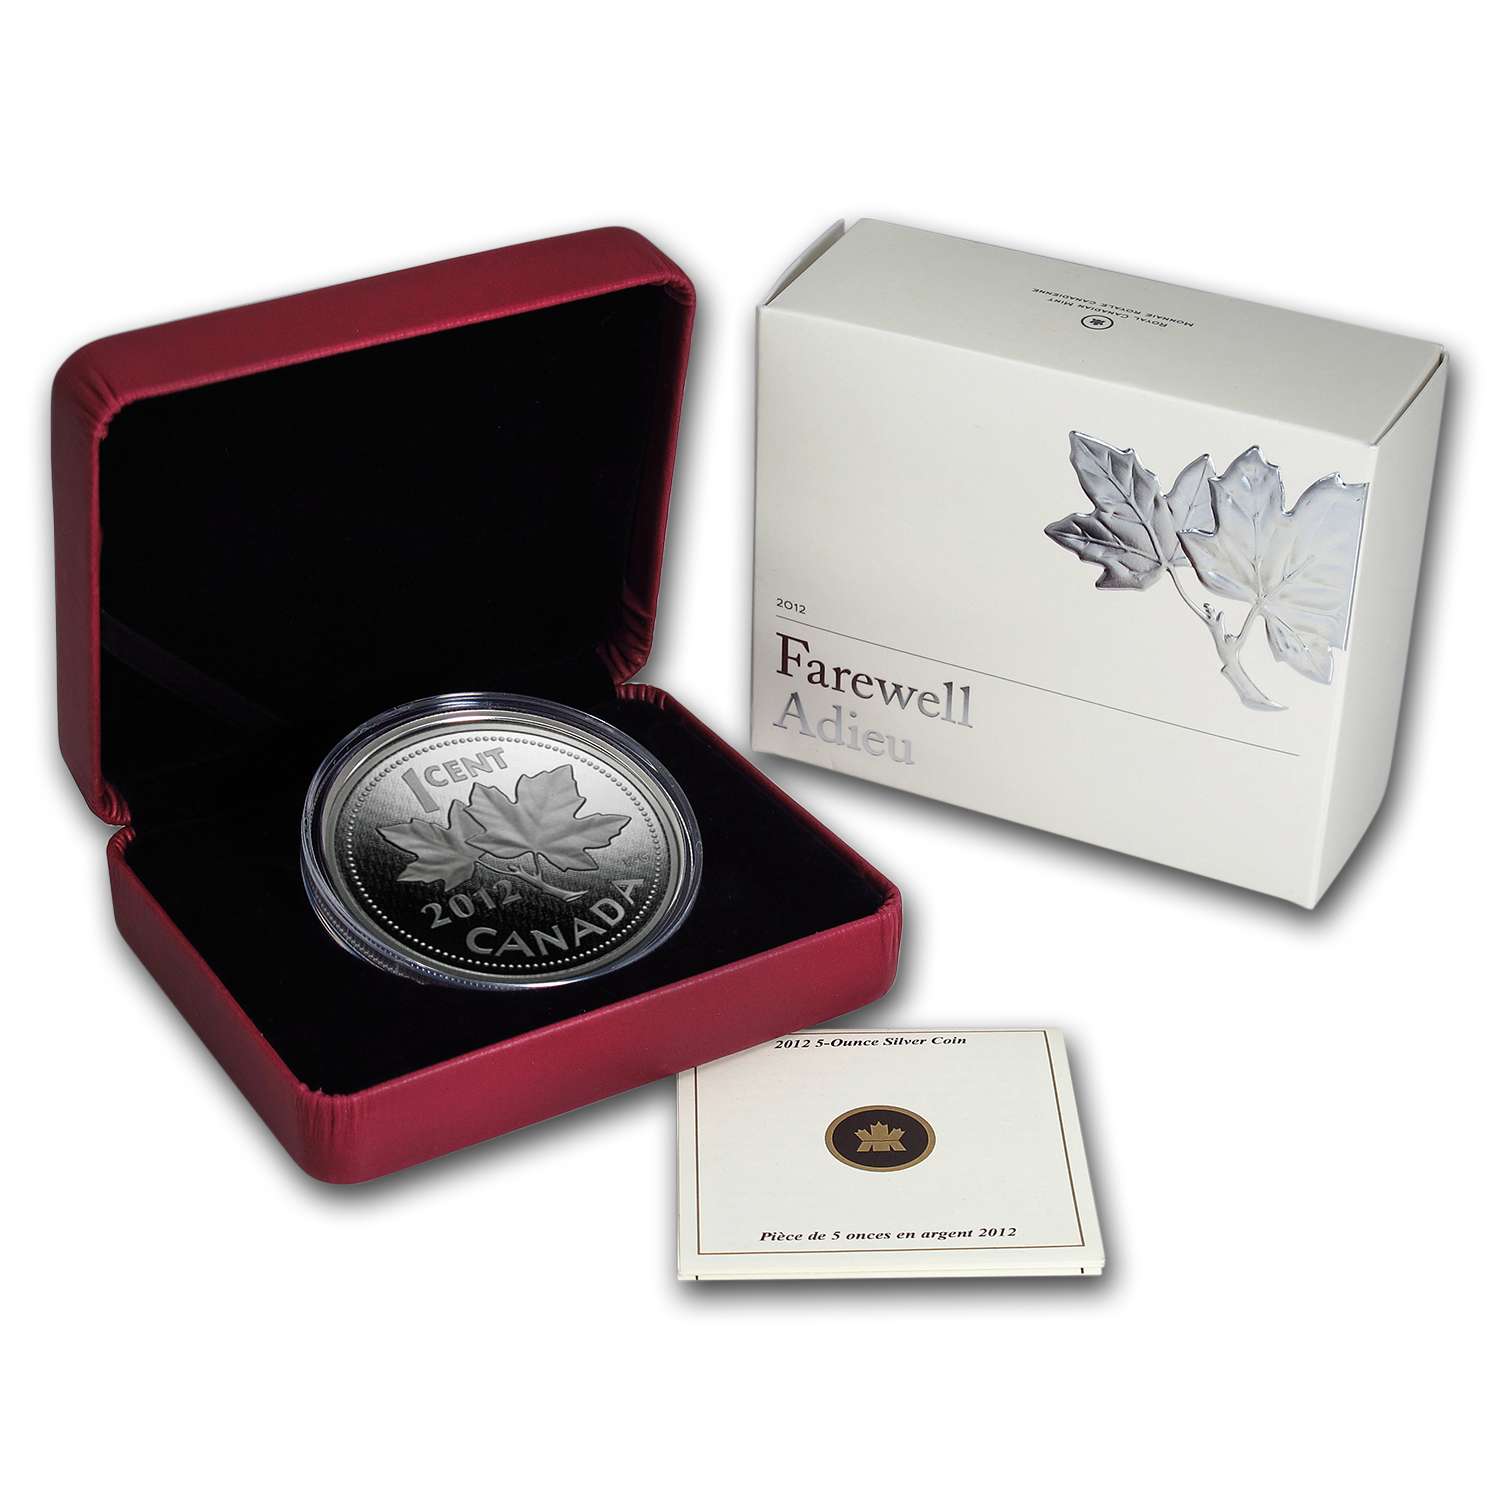 2012 5 oz Silver Canadian Coin - Farewell to the Penny